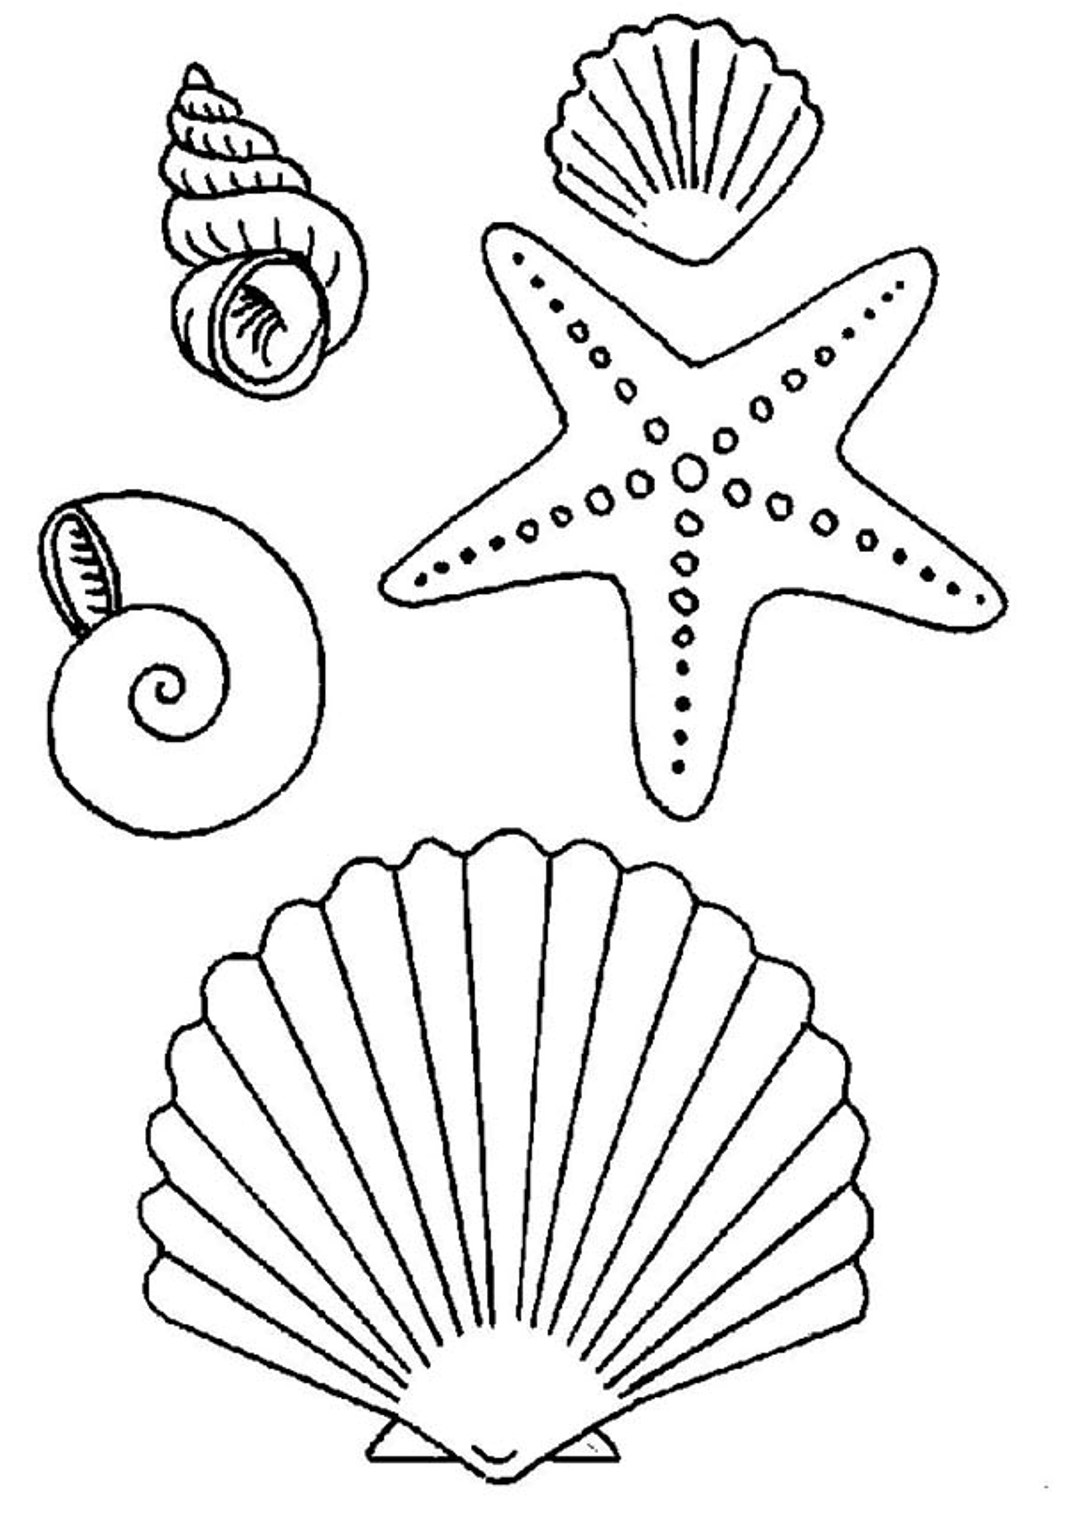 Download and Print seashell and starfish coloring pages.